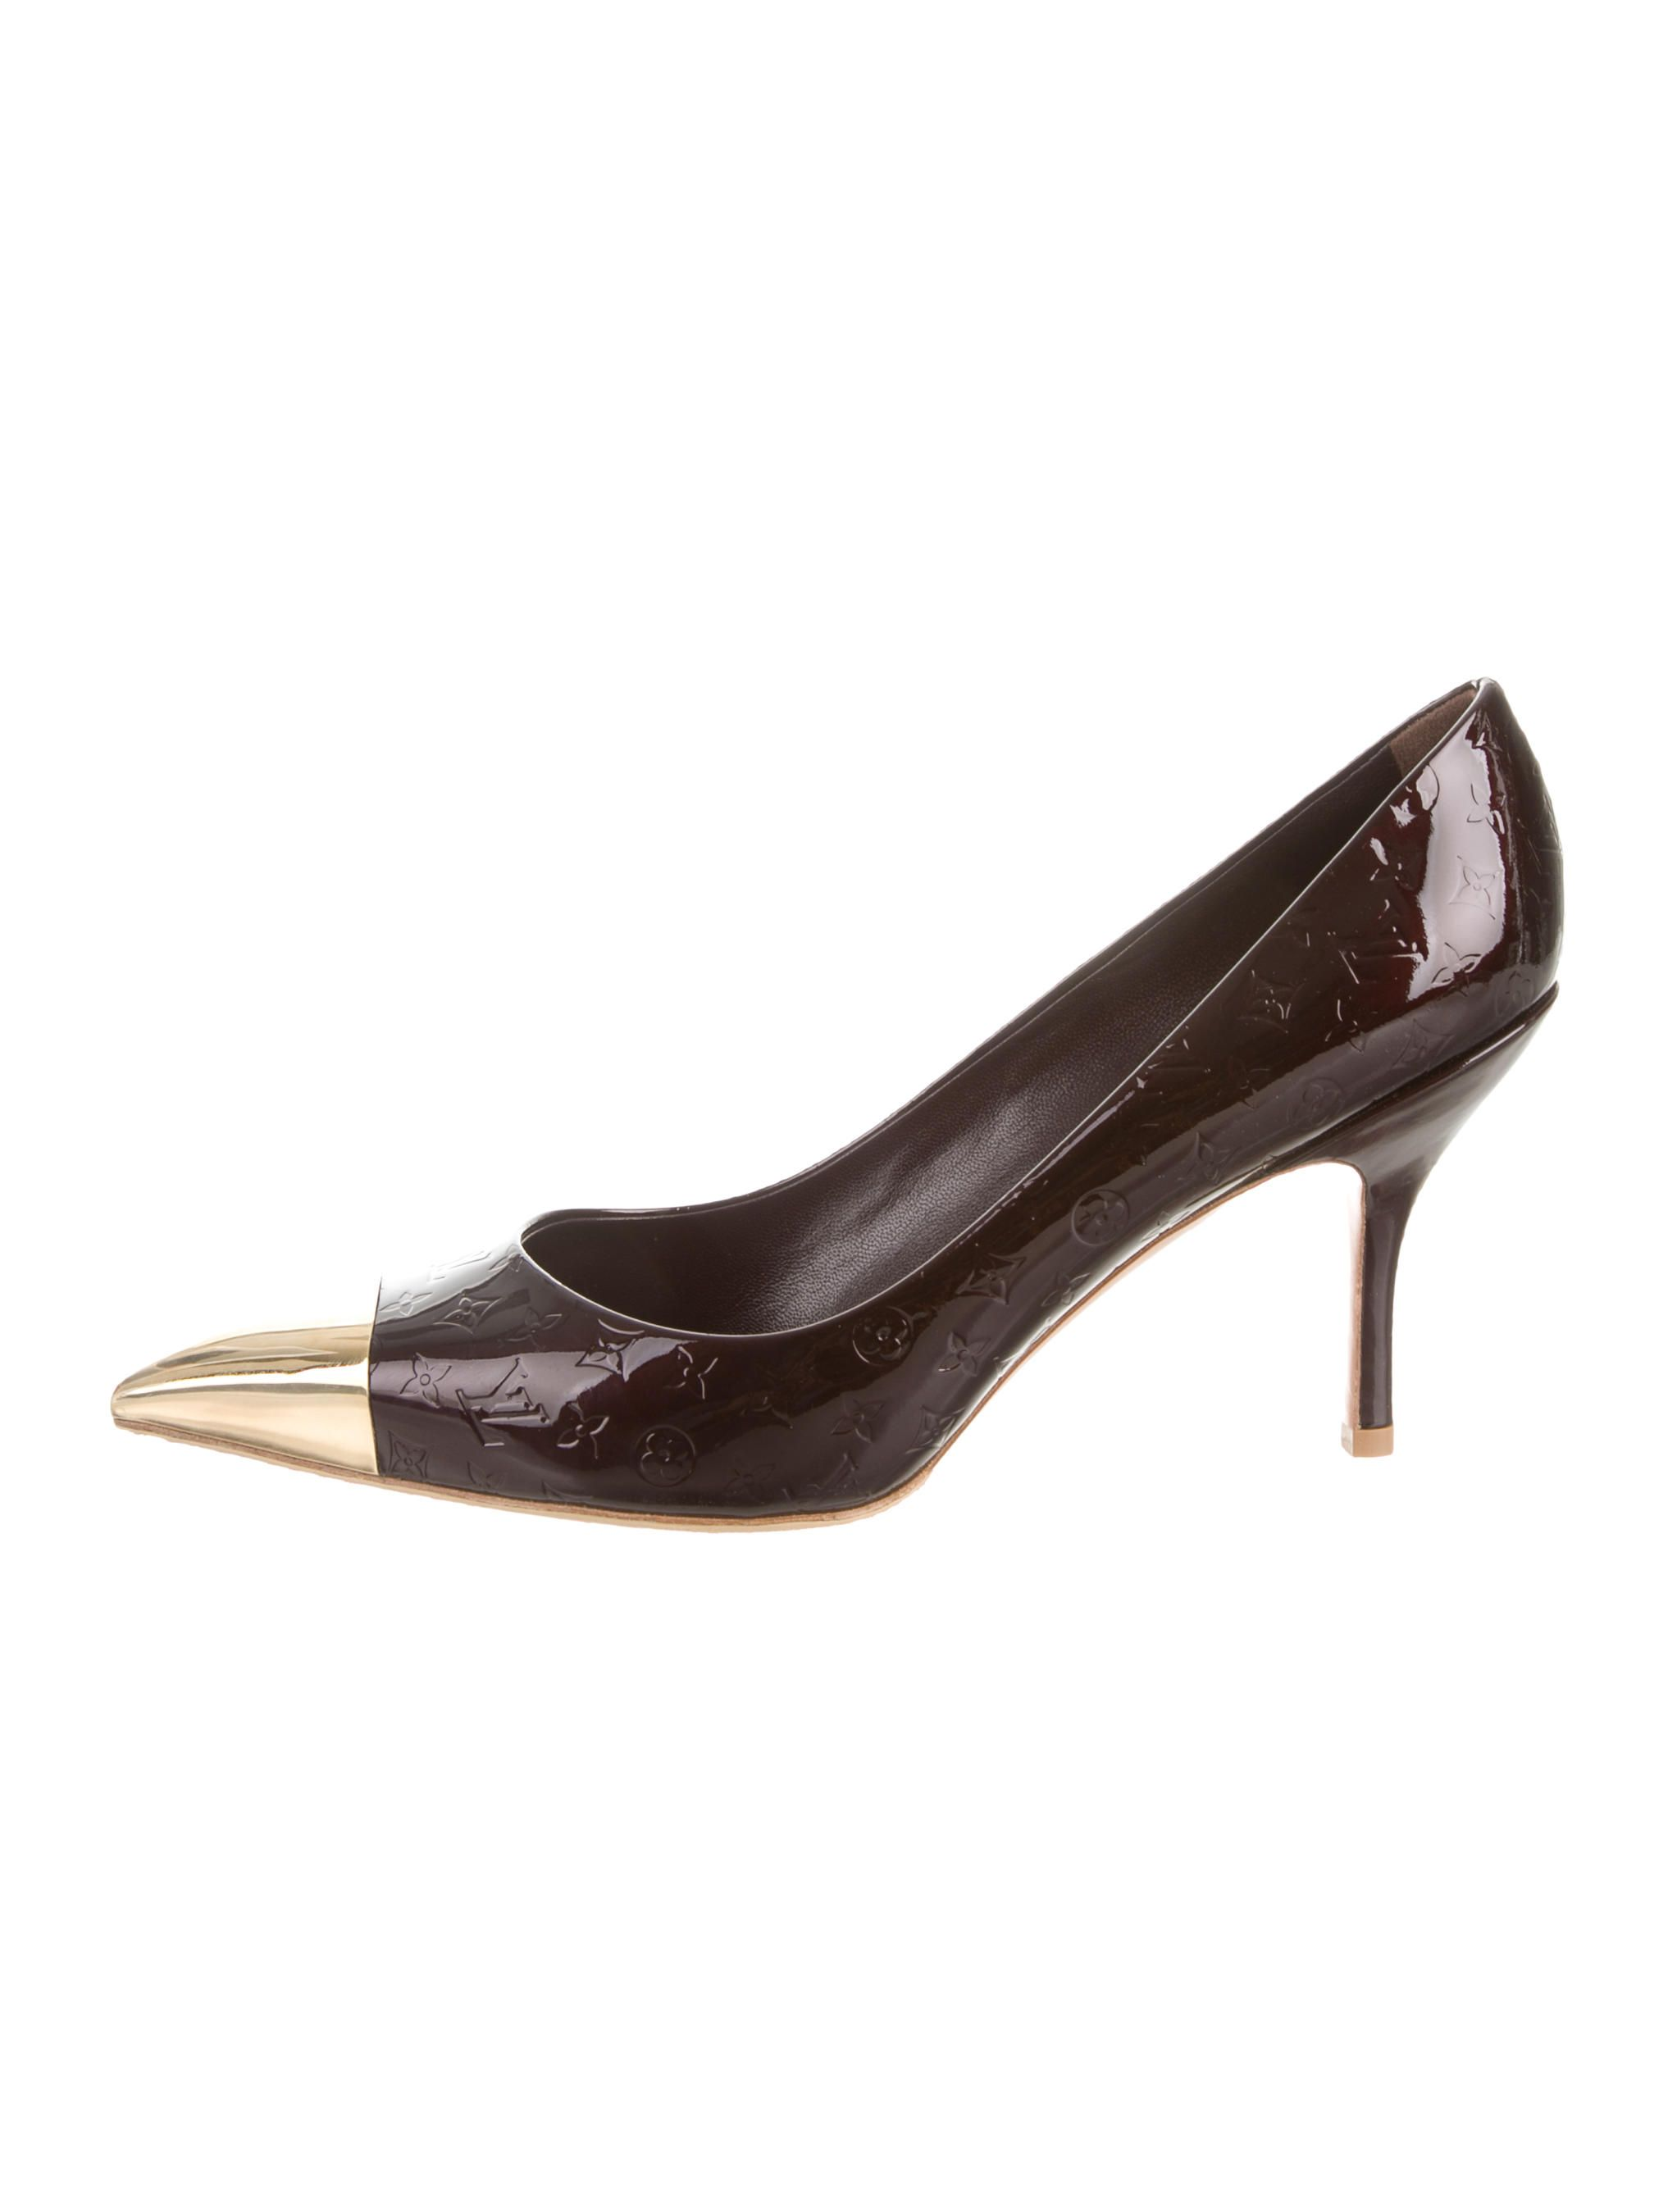 d5e7855b3d58 Plum monogram Vernis Louis Vuitton pointed-toe pumps with gold-tone cap-toes  and covered heels.